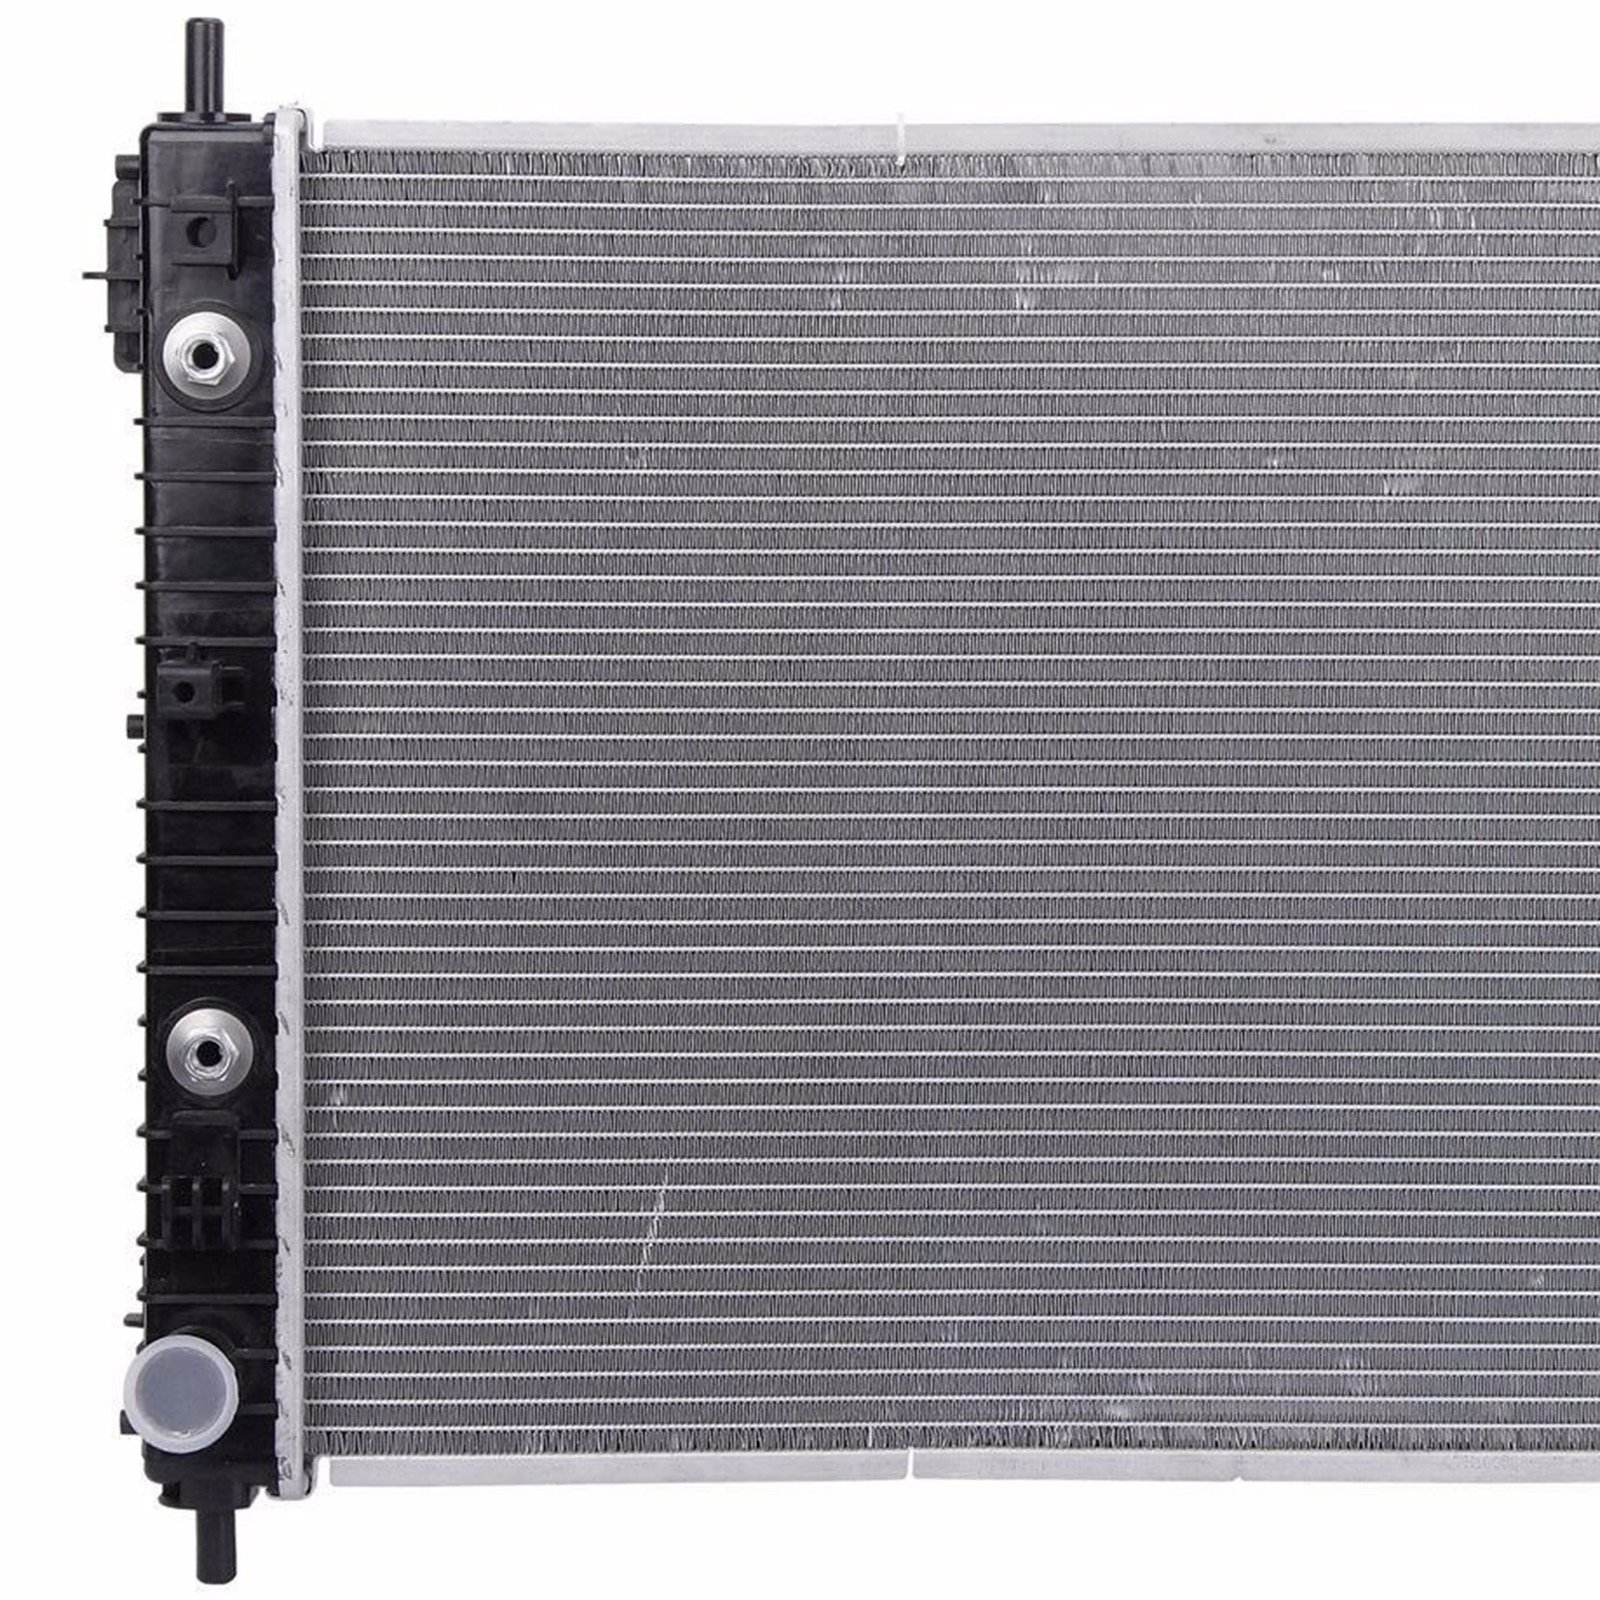 SCITOO 13007 Radiator fits for 2008-2015 Buick Enclave 2009-2015 Chevrolet Traverse 2007-2014 GMC Acadia Sport Utility 4-Door 3.6L by SCITOO (Image #3)